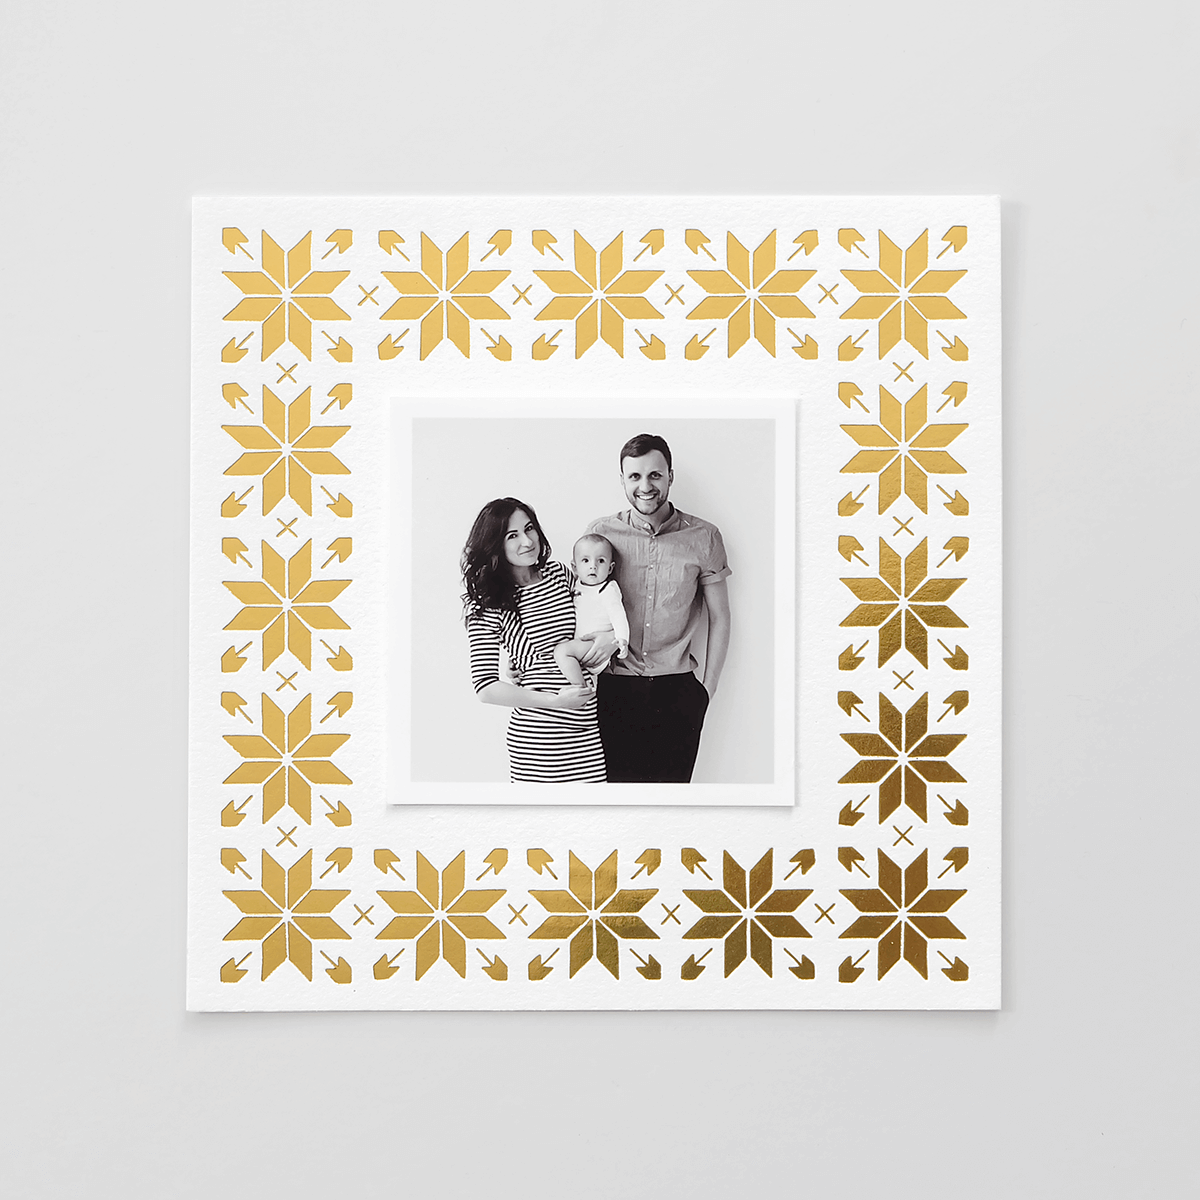 Snowflake Gold Foil Photo Holiday Card